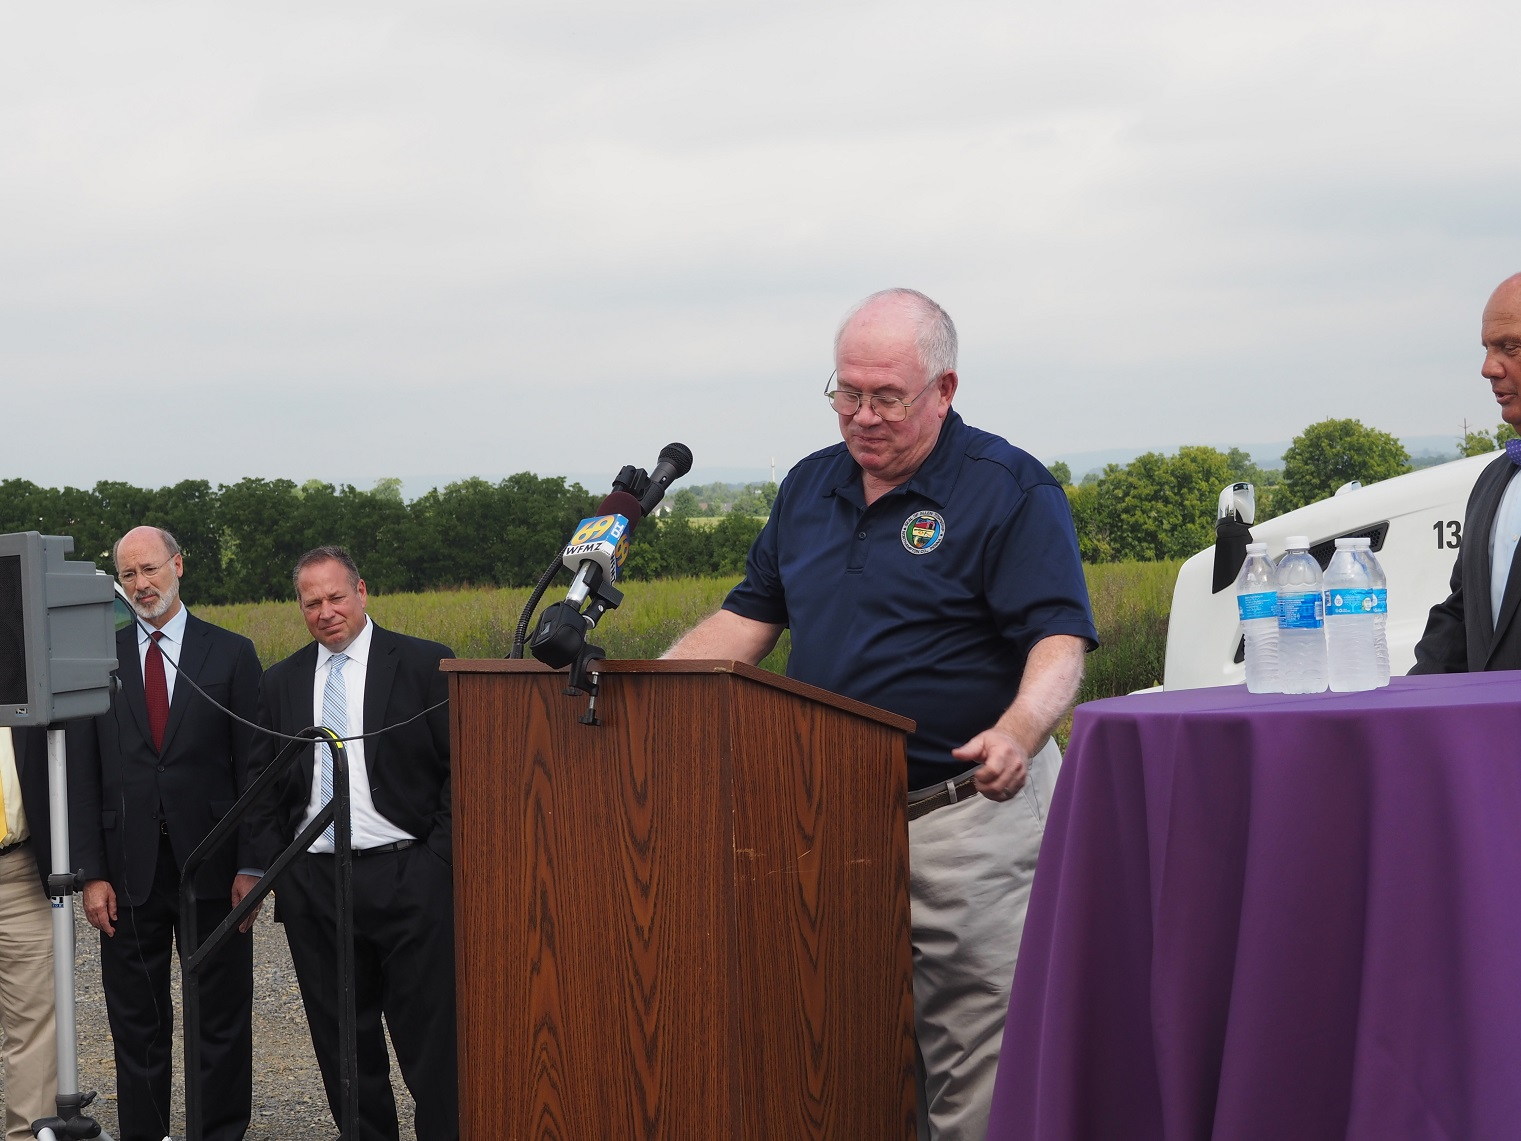 Allen Township Supervisor Larry Oberly speaking at the Fedex Ground groundbreaking in Allen Township.